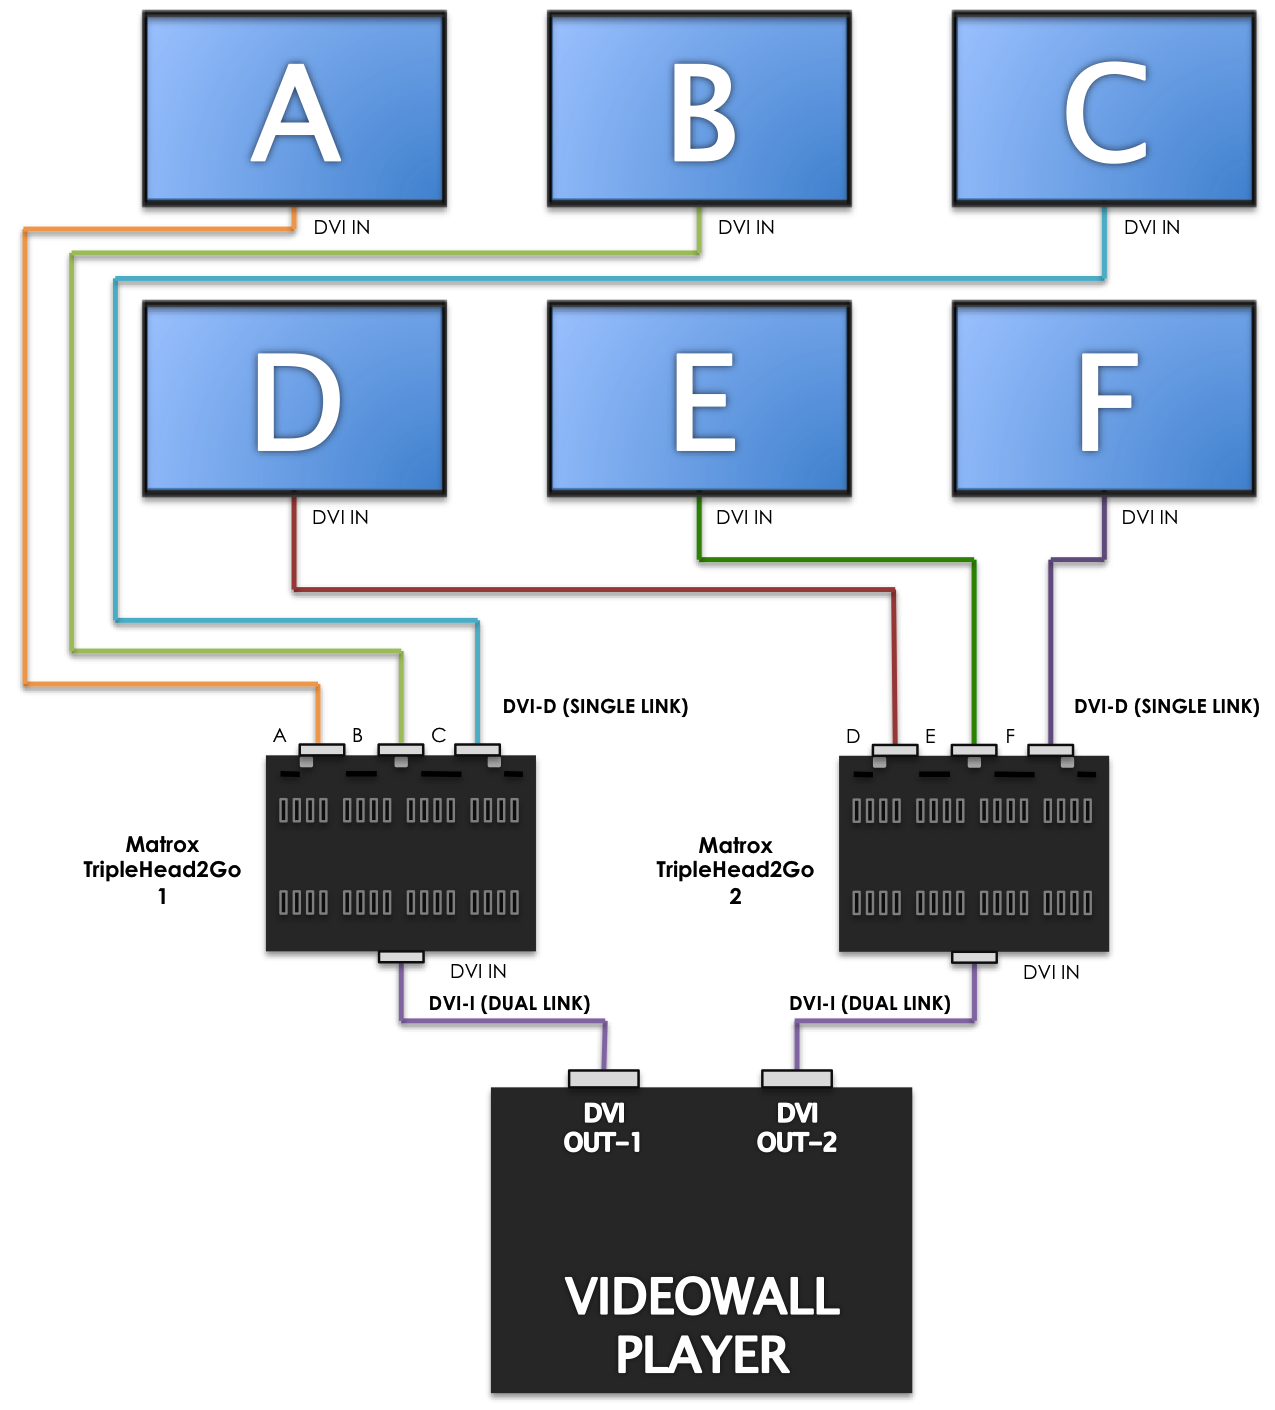 Configuring A Video Wall Application Appspace V70 Documentation Also Live Band Stage Setup Diagram Together With Firewall Work Follow The Instructions Below To Configure And Deploy Your